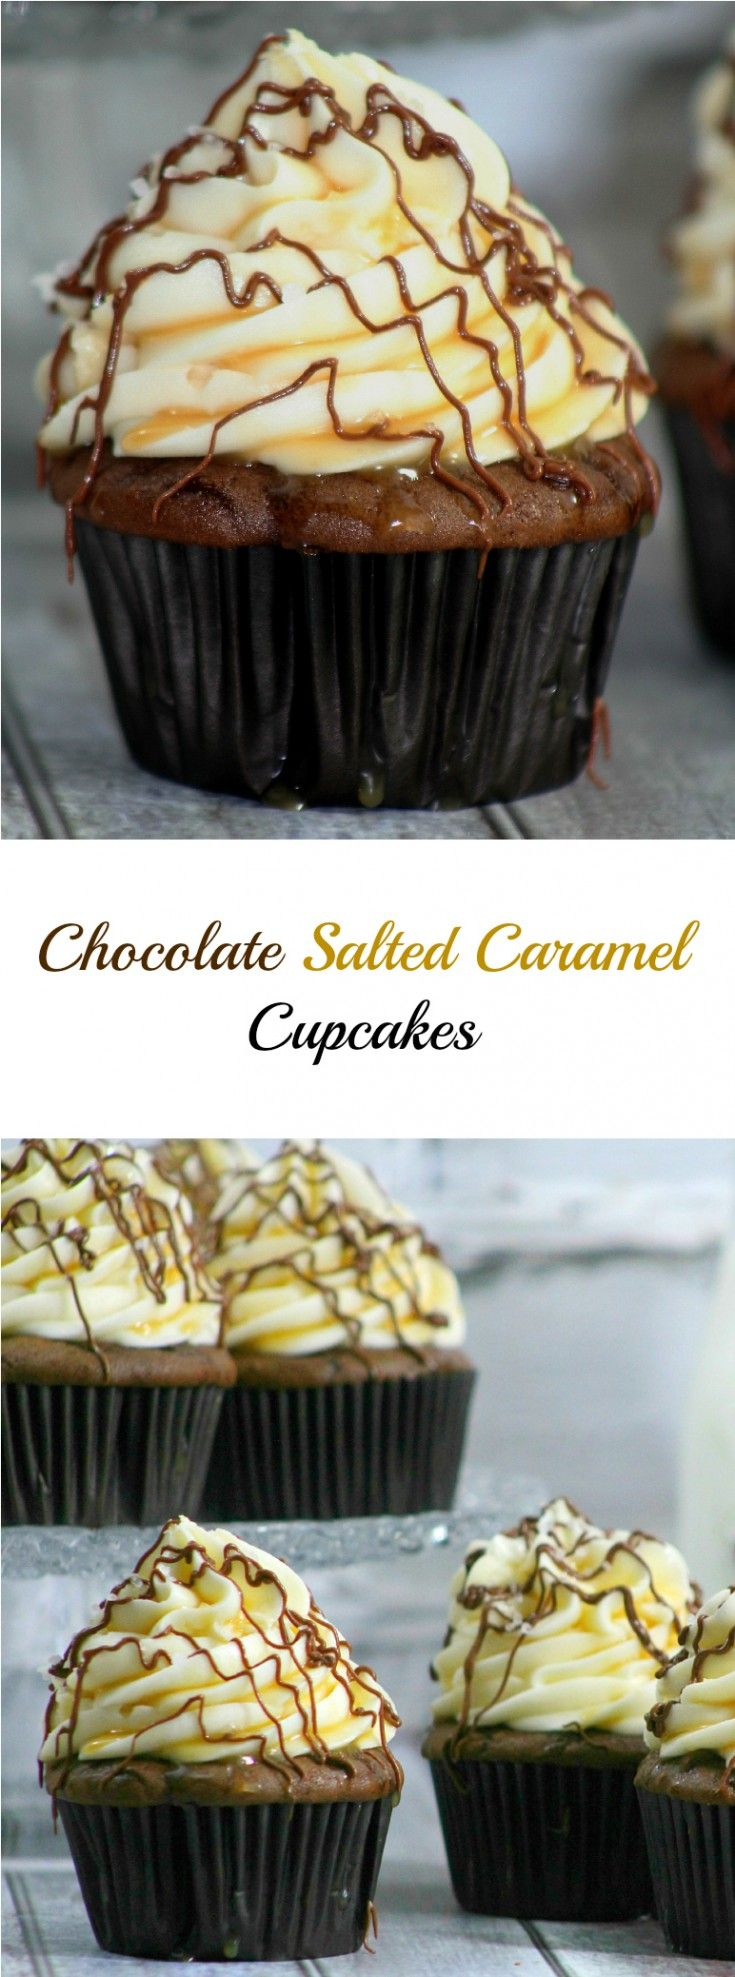 Chocolate and salted caramel go together so well, they are the perfect pair. The taste of Chocolate Salted Caramel Cupcakes is like heaven in every bite.